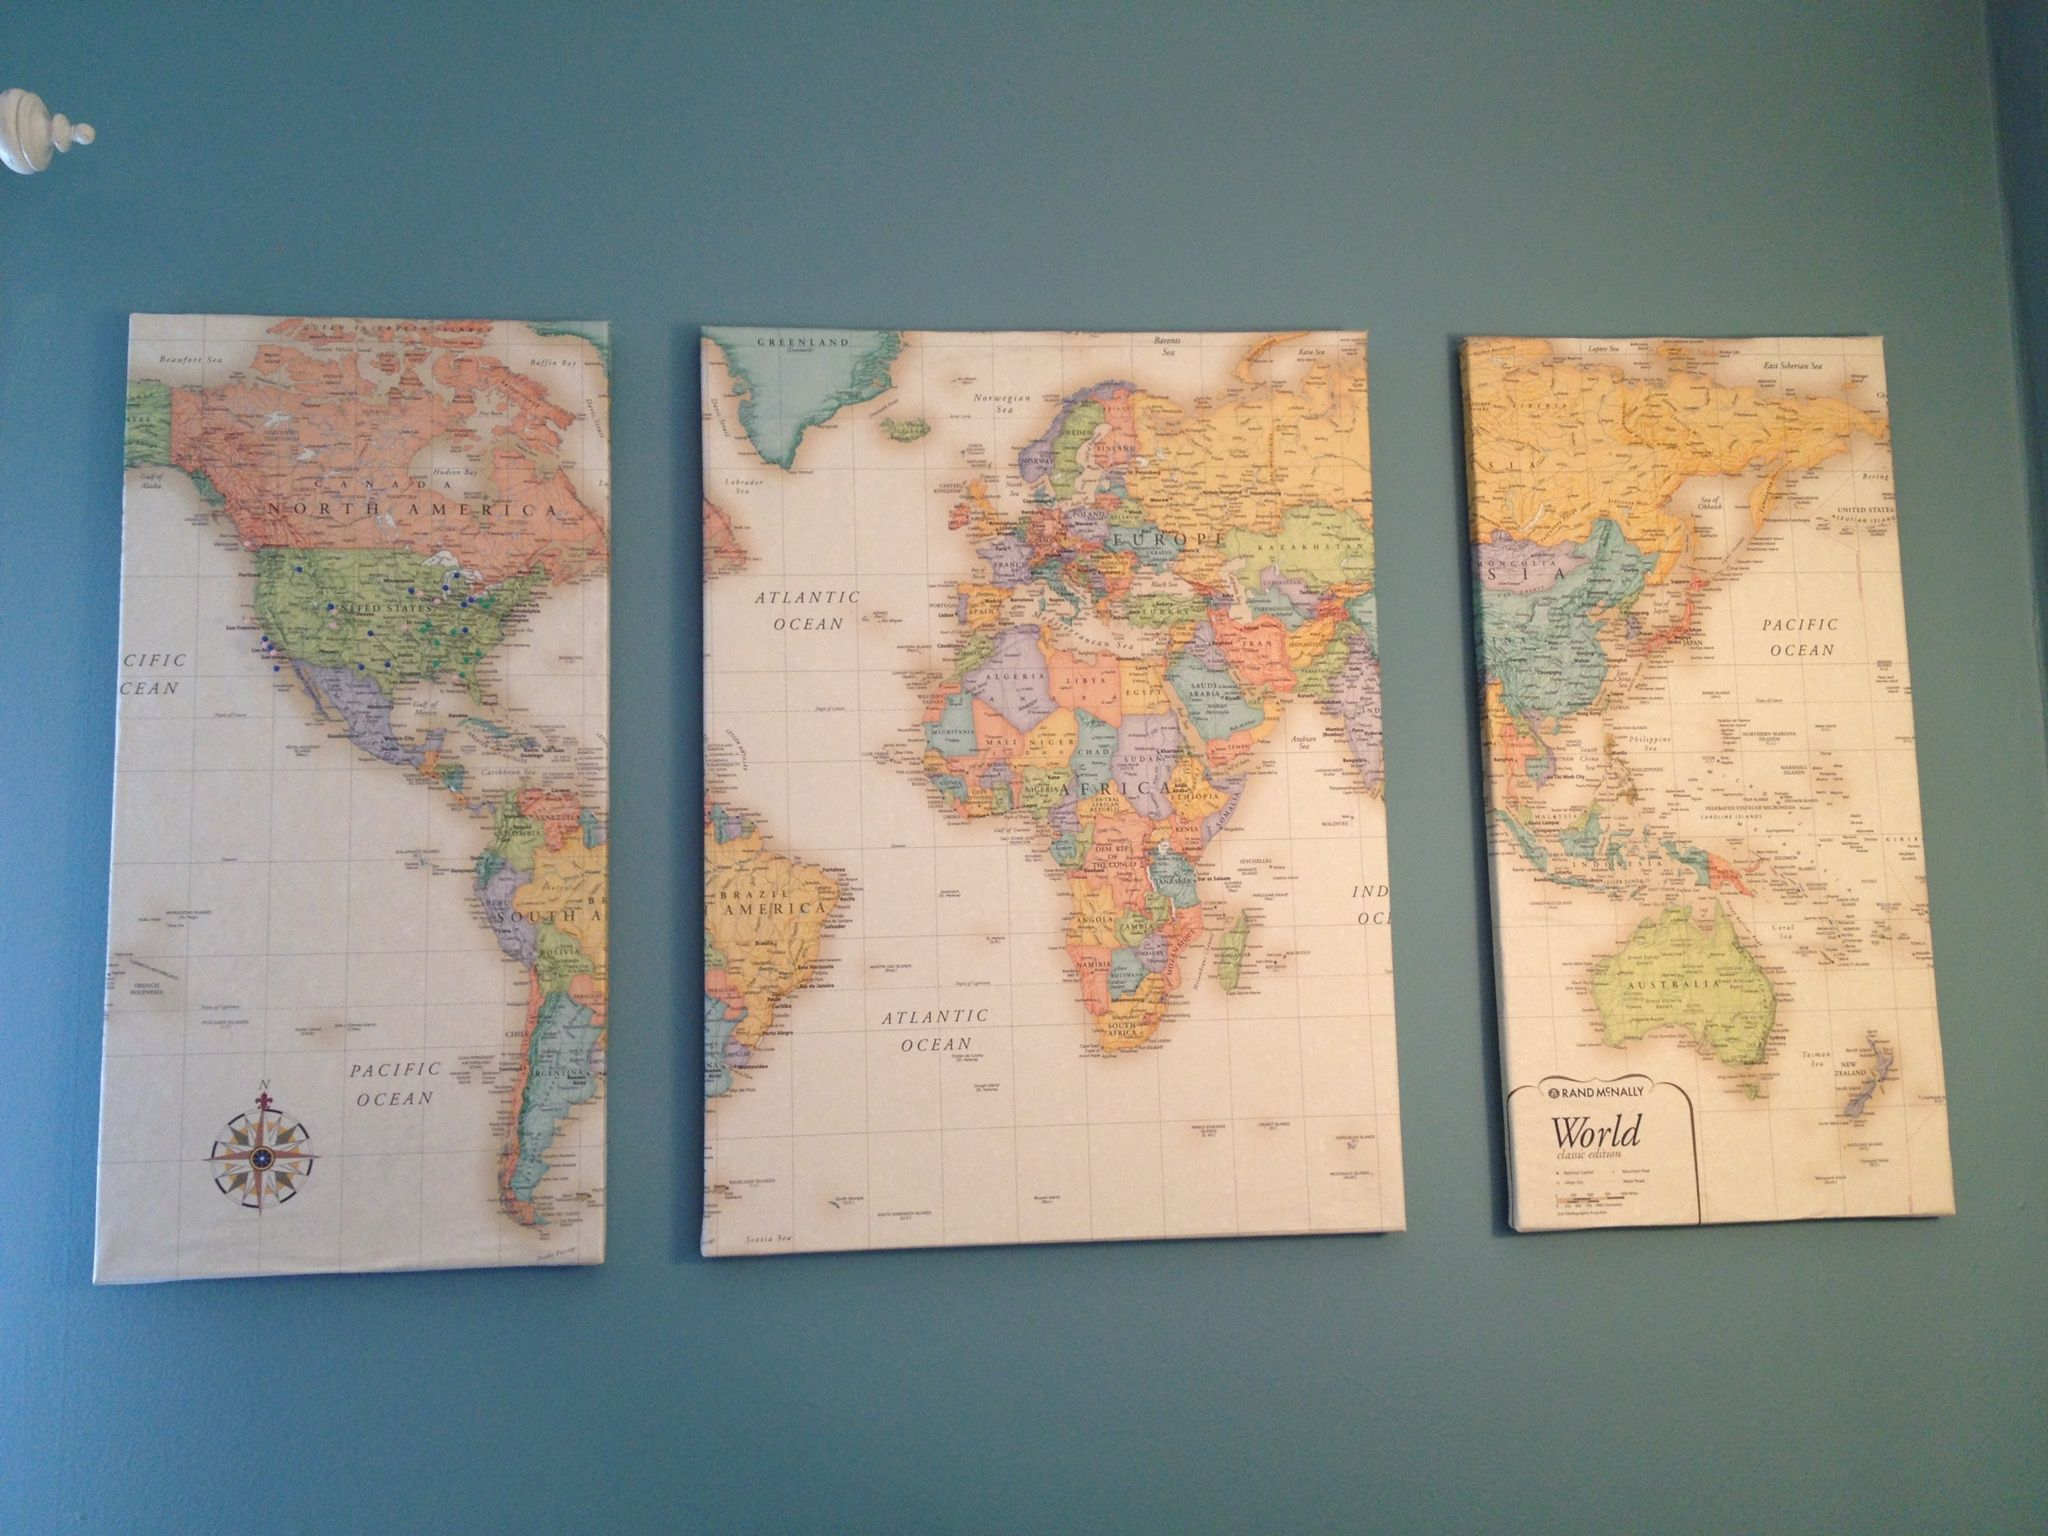 Lay a world map over 3 canvas foam core would be cheaper cut into lay a world map over 3 canvas cut into 3 pieces coat each canvas with mod podge and wrap the maps around them like presents let dry and hang on the wall gumiabroncs Gallery